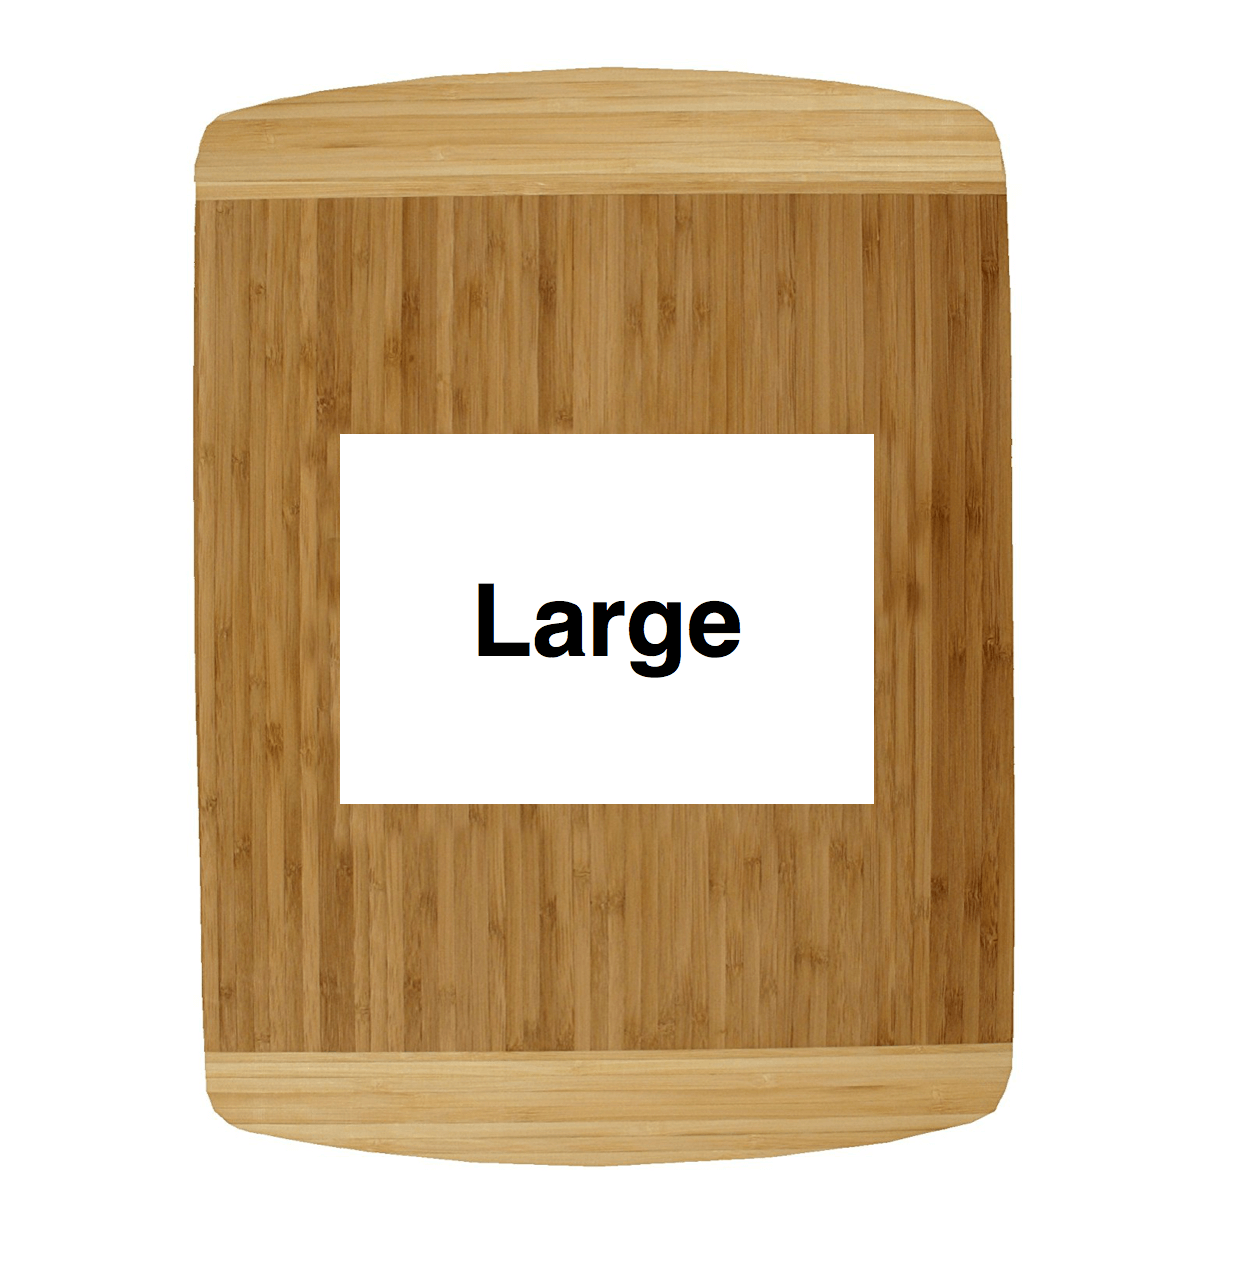 wholesale large bamboo cutting board stratos. Black Bedroom Furniture Sets. Home Design Ideas